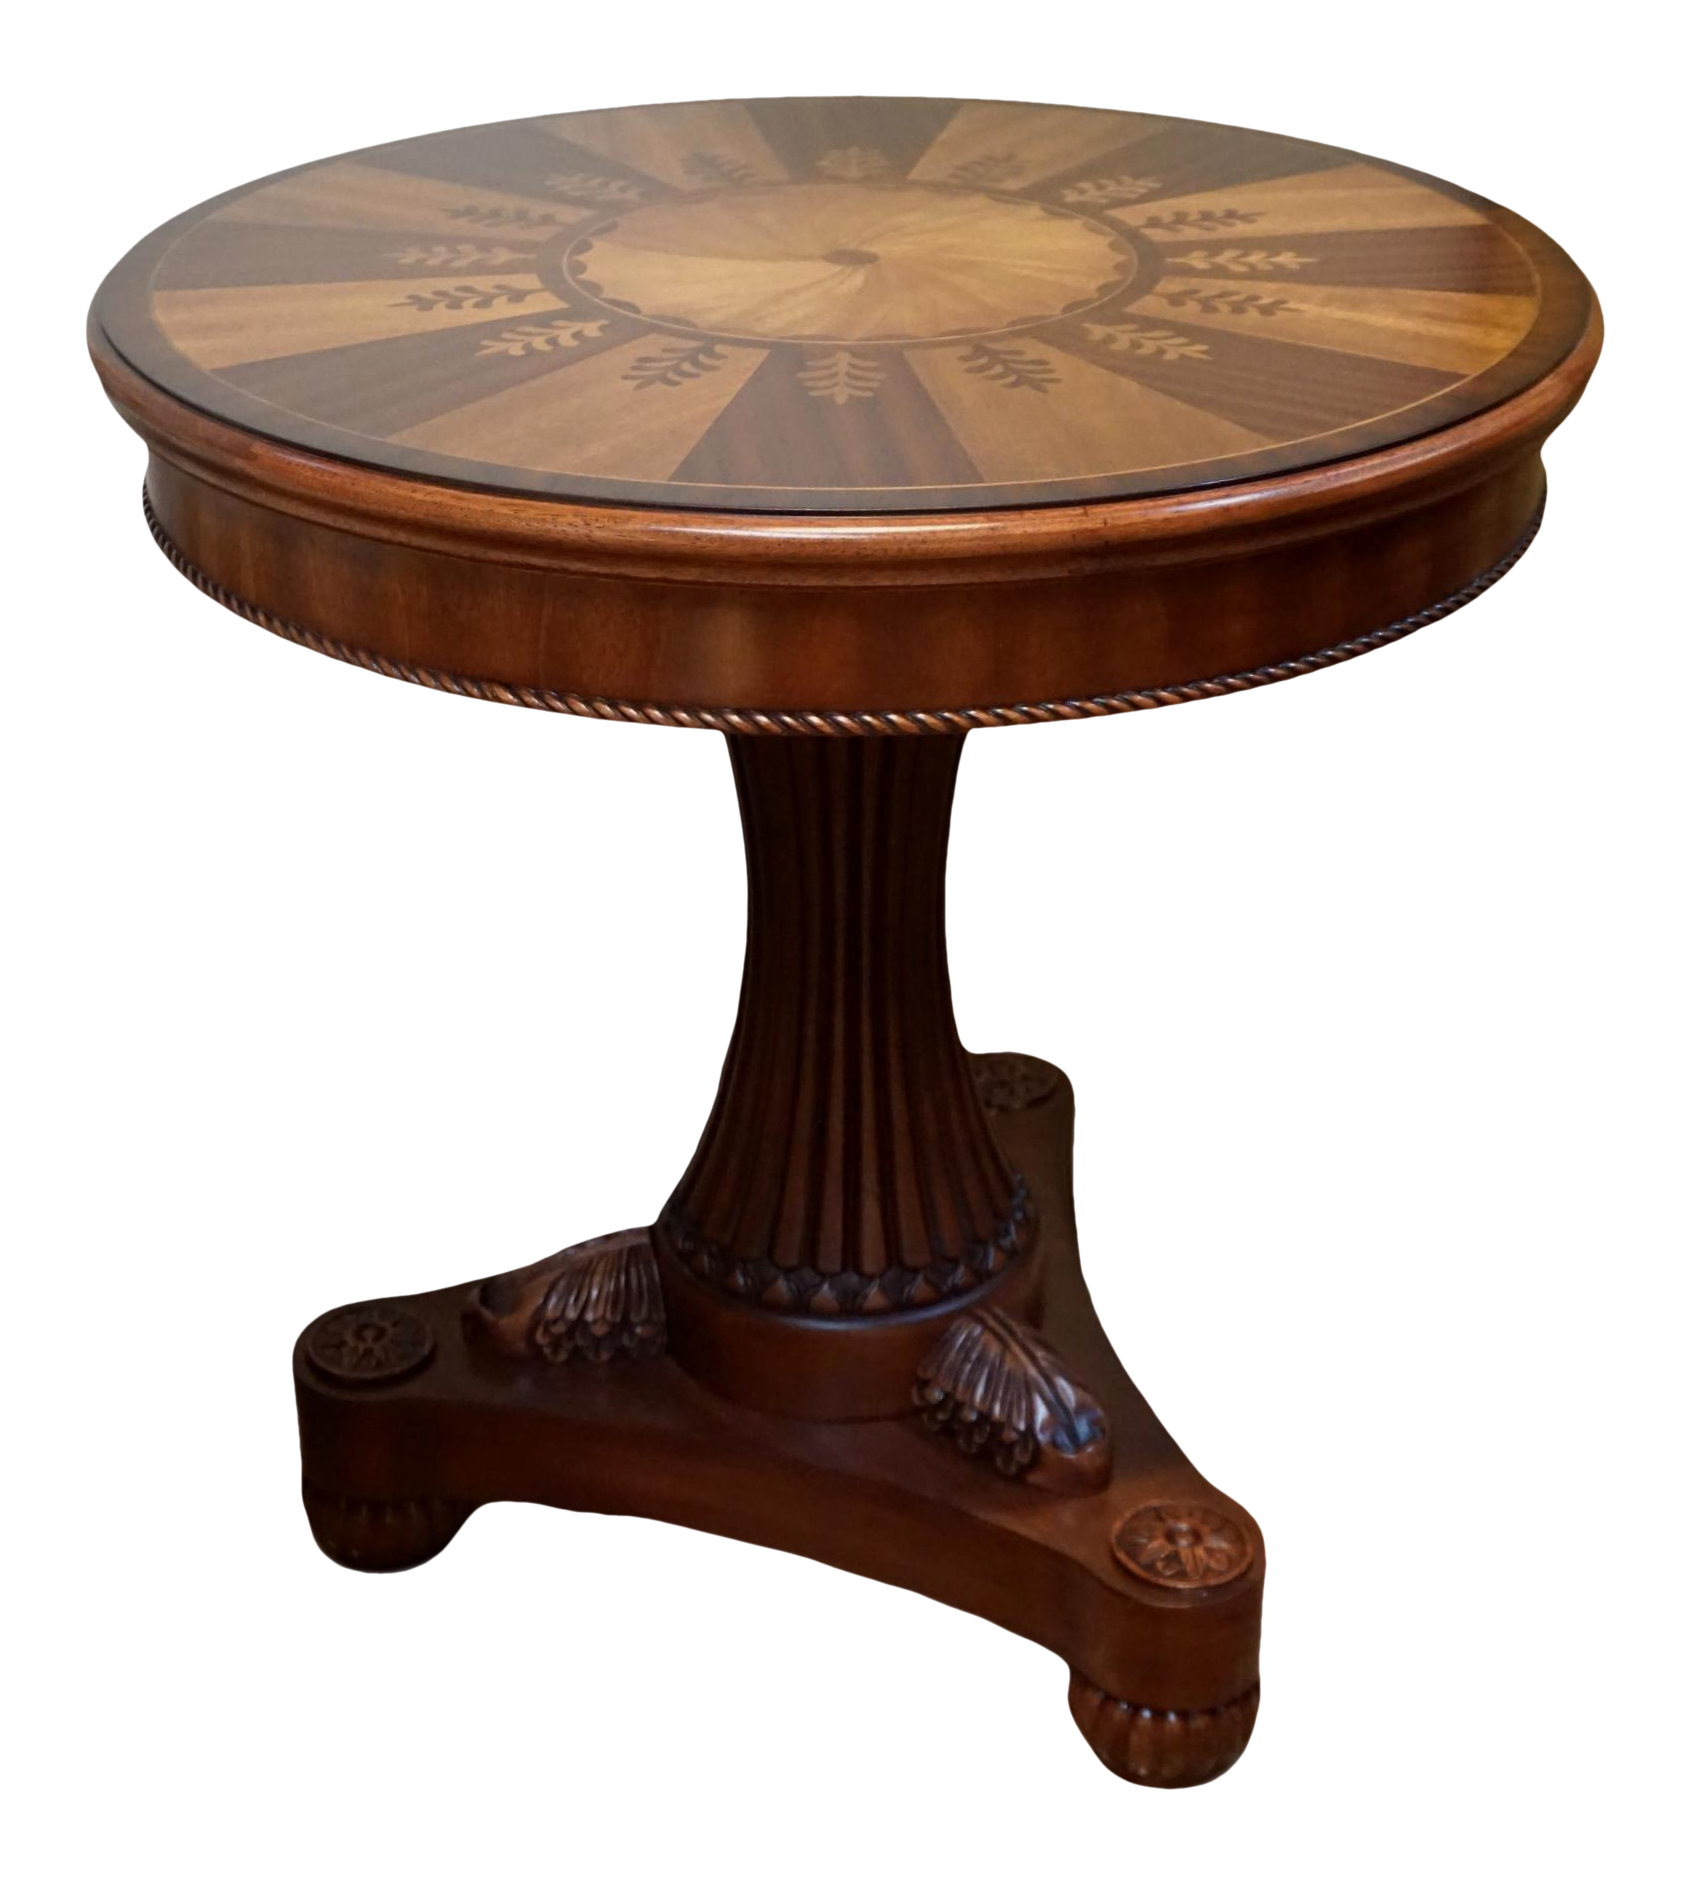 Pedestal drawing small table. Round marquetry inlay side